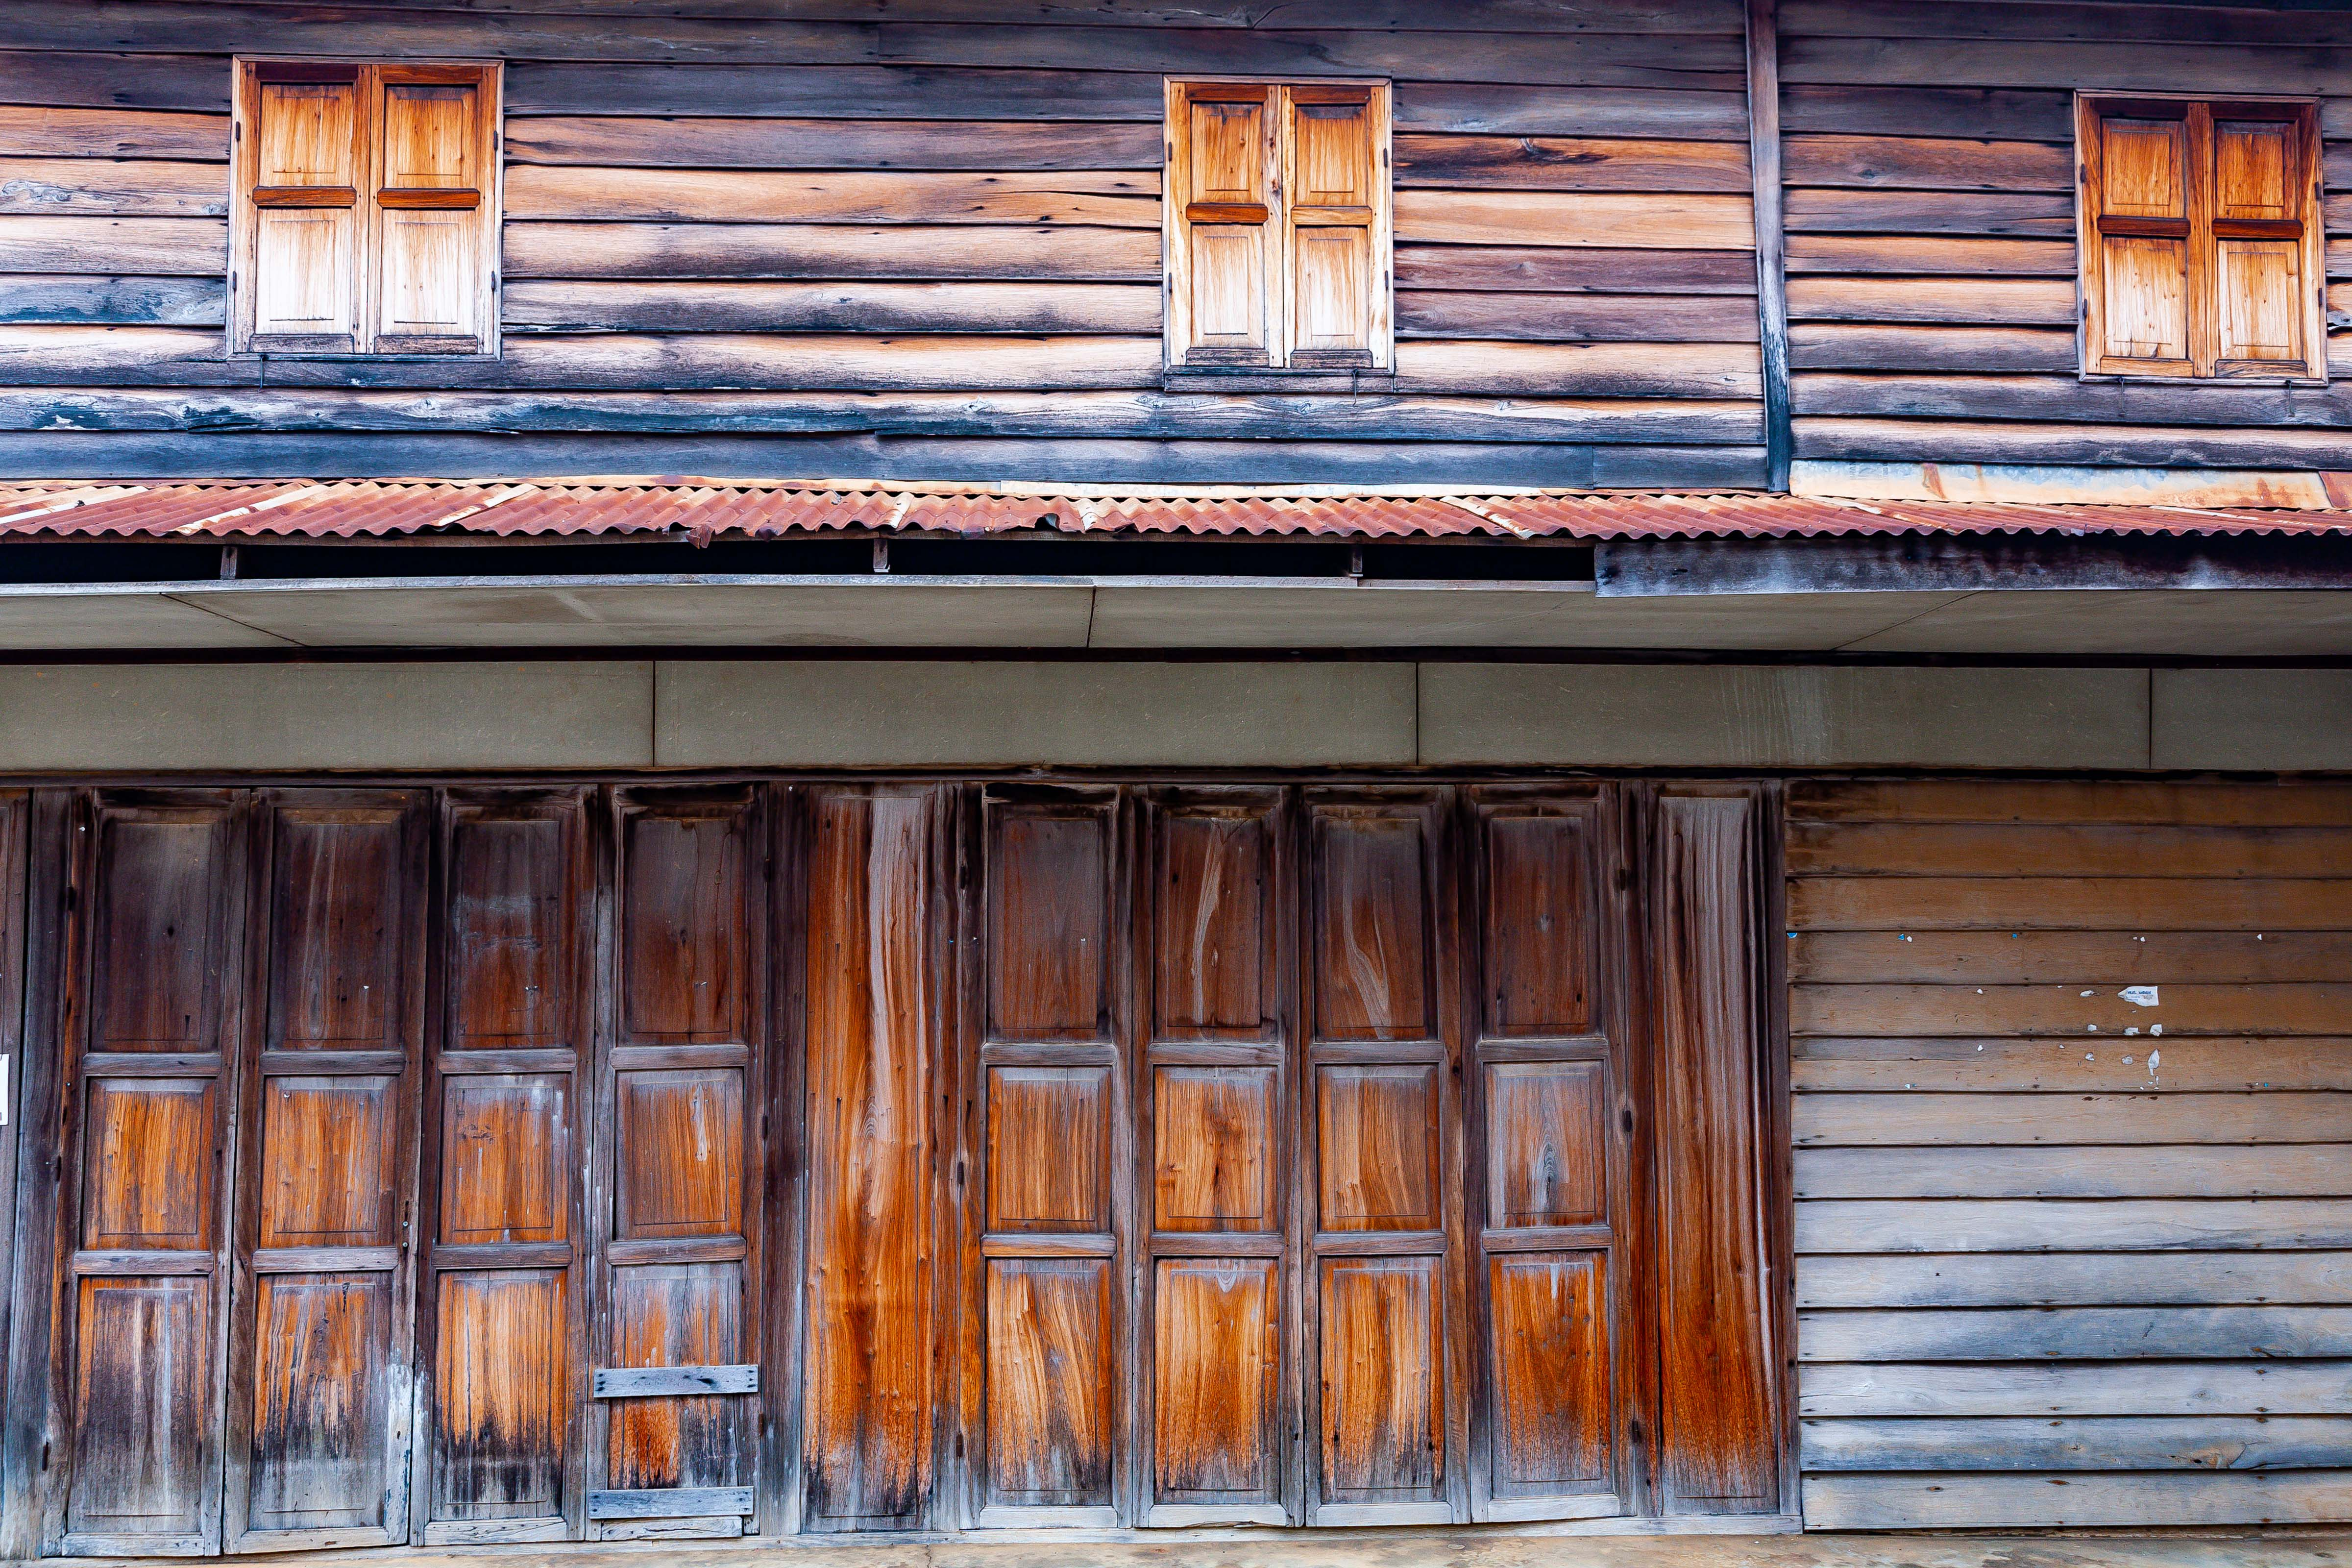 Thailand, Loei Prov, Chiang Khan Housefront, 2008, IMG 6419